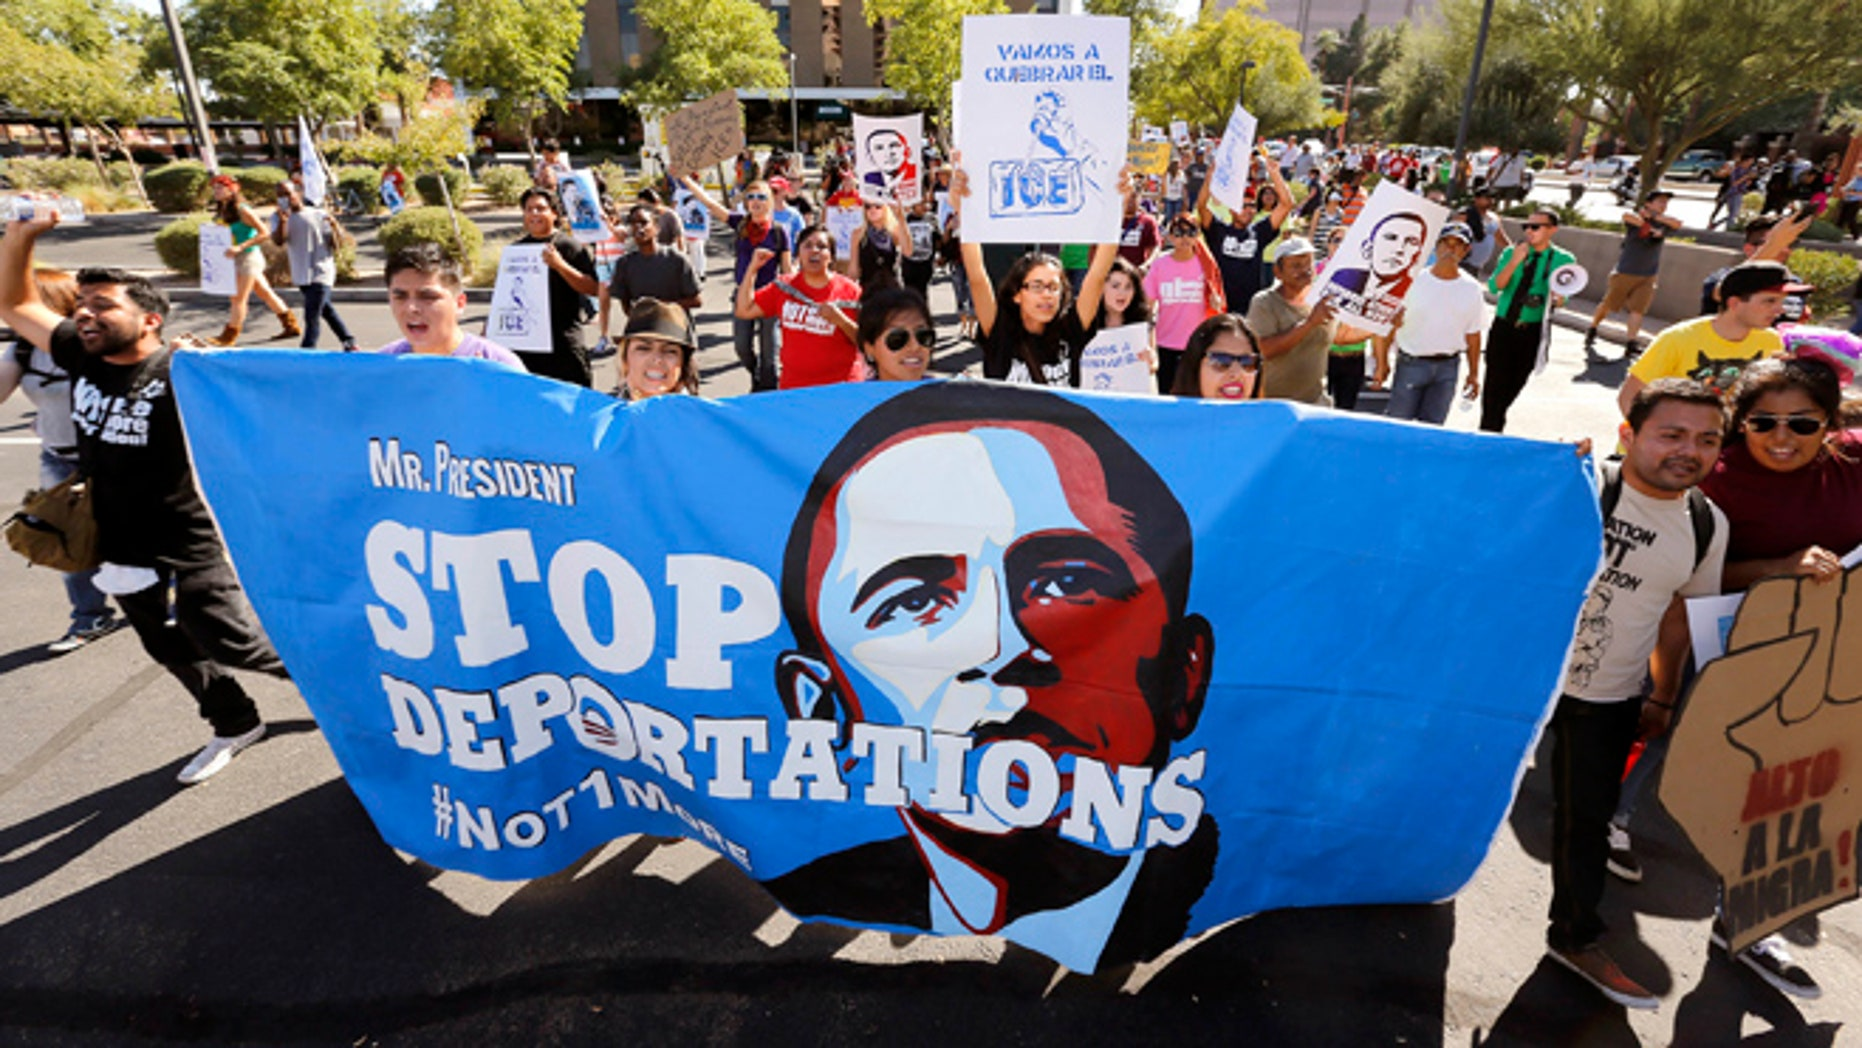 FILE: Monday Oct. 14, 2013: Hundreds of people march to the U.S. Immigrations and Customs Enforcement office with a goal of stopping future deportations.